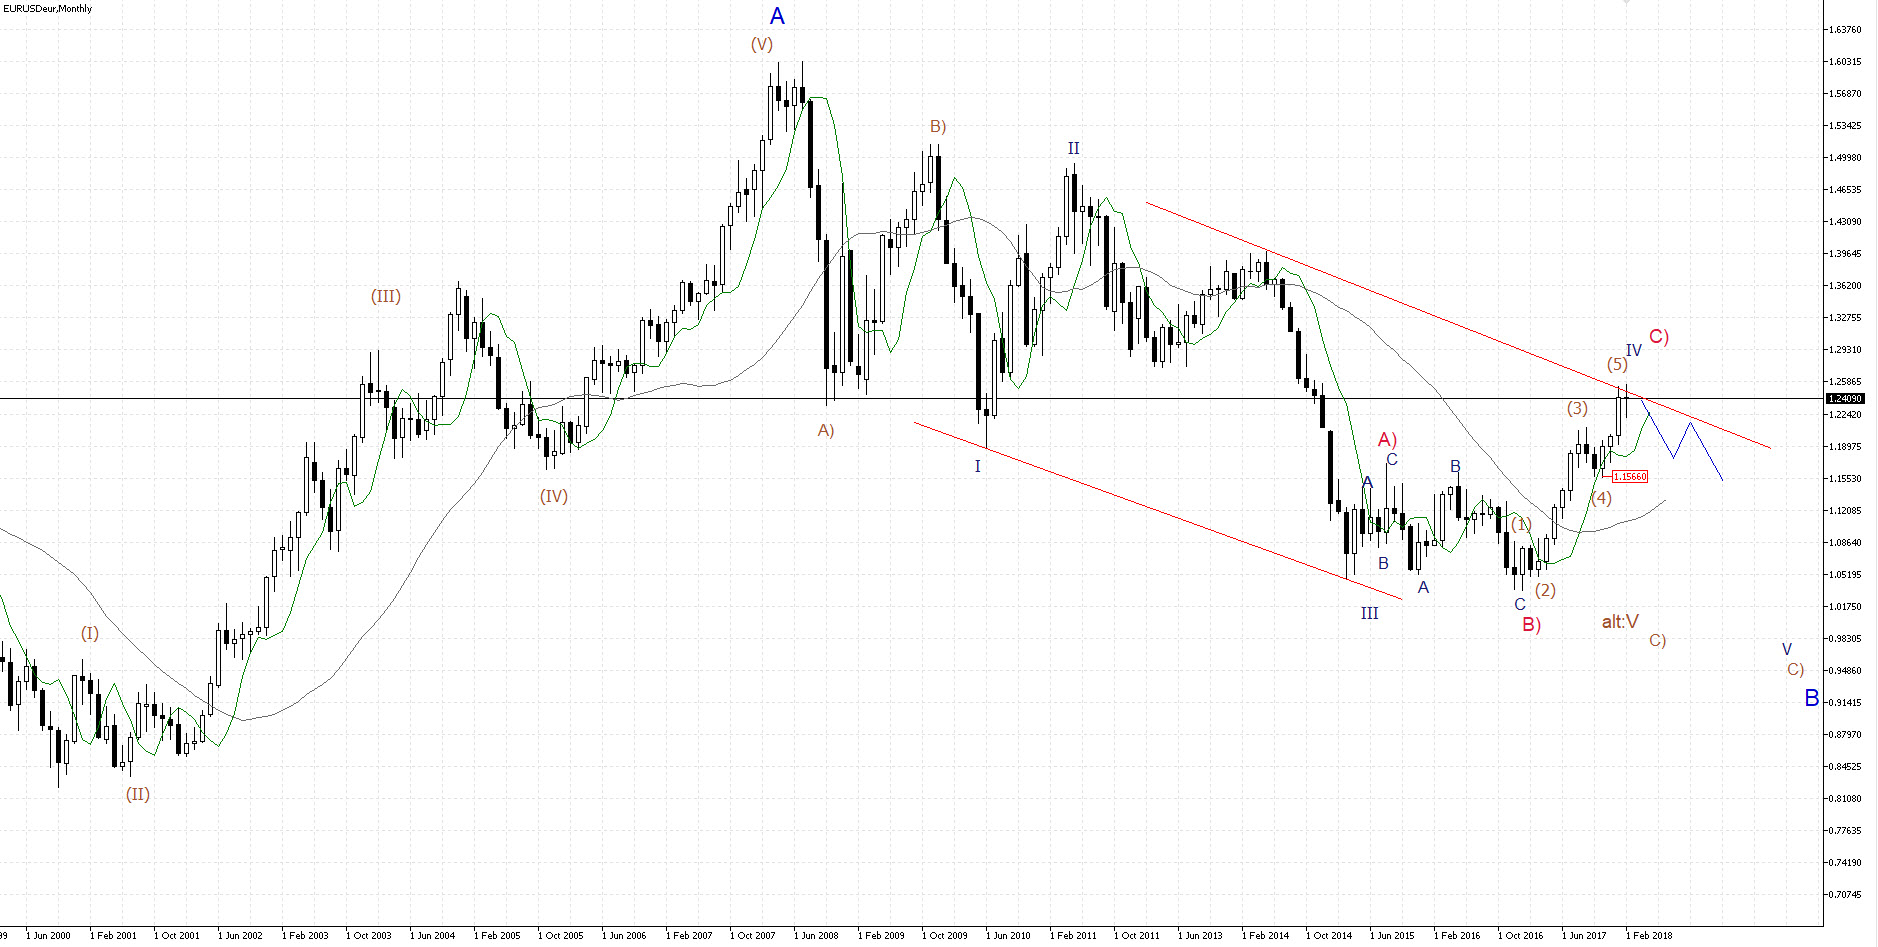 Eur Monthly.